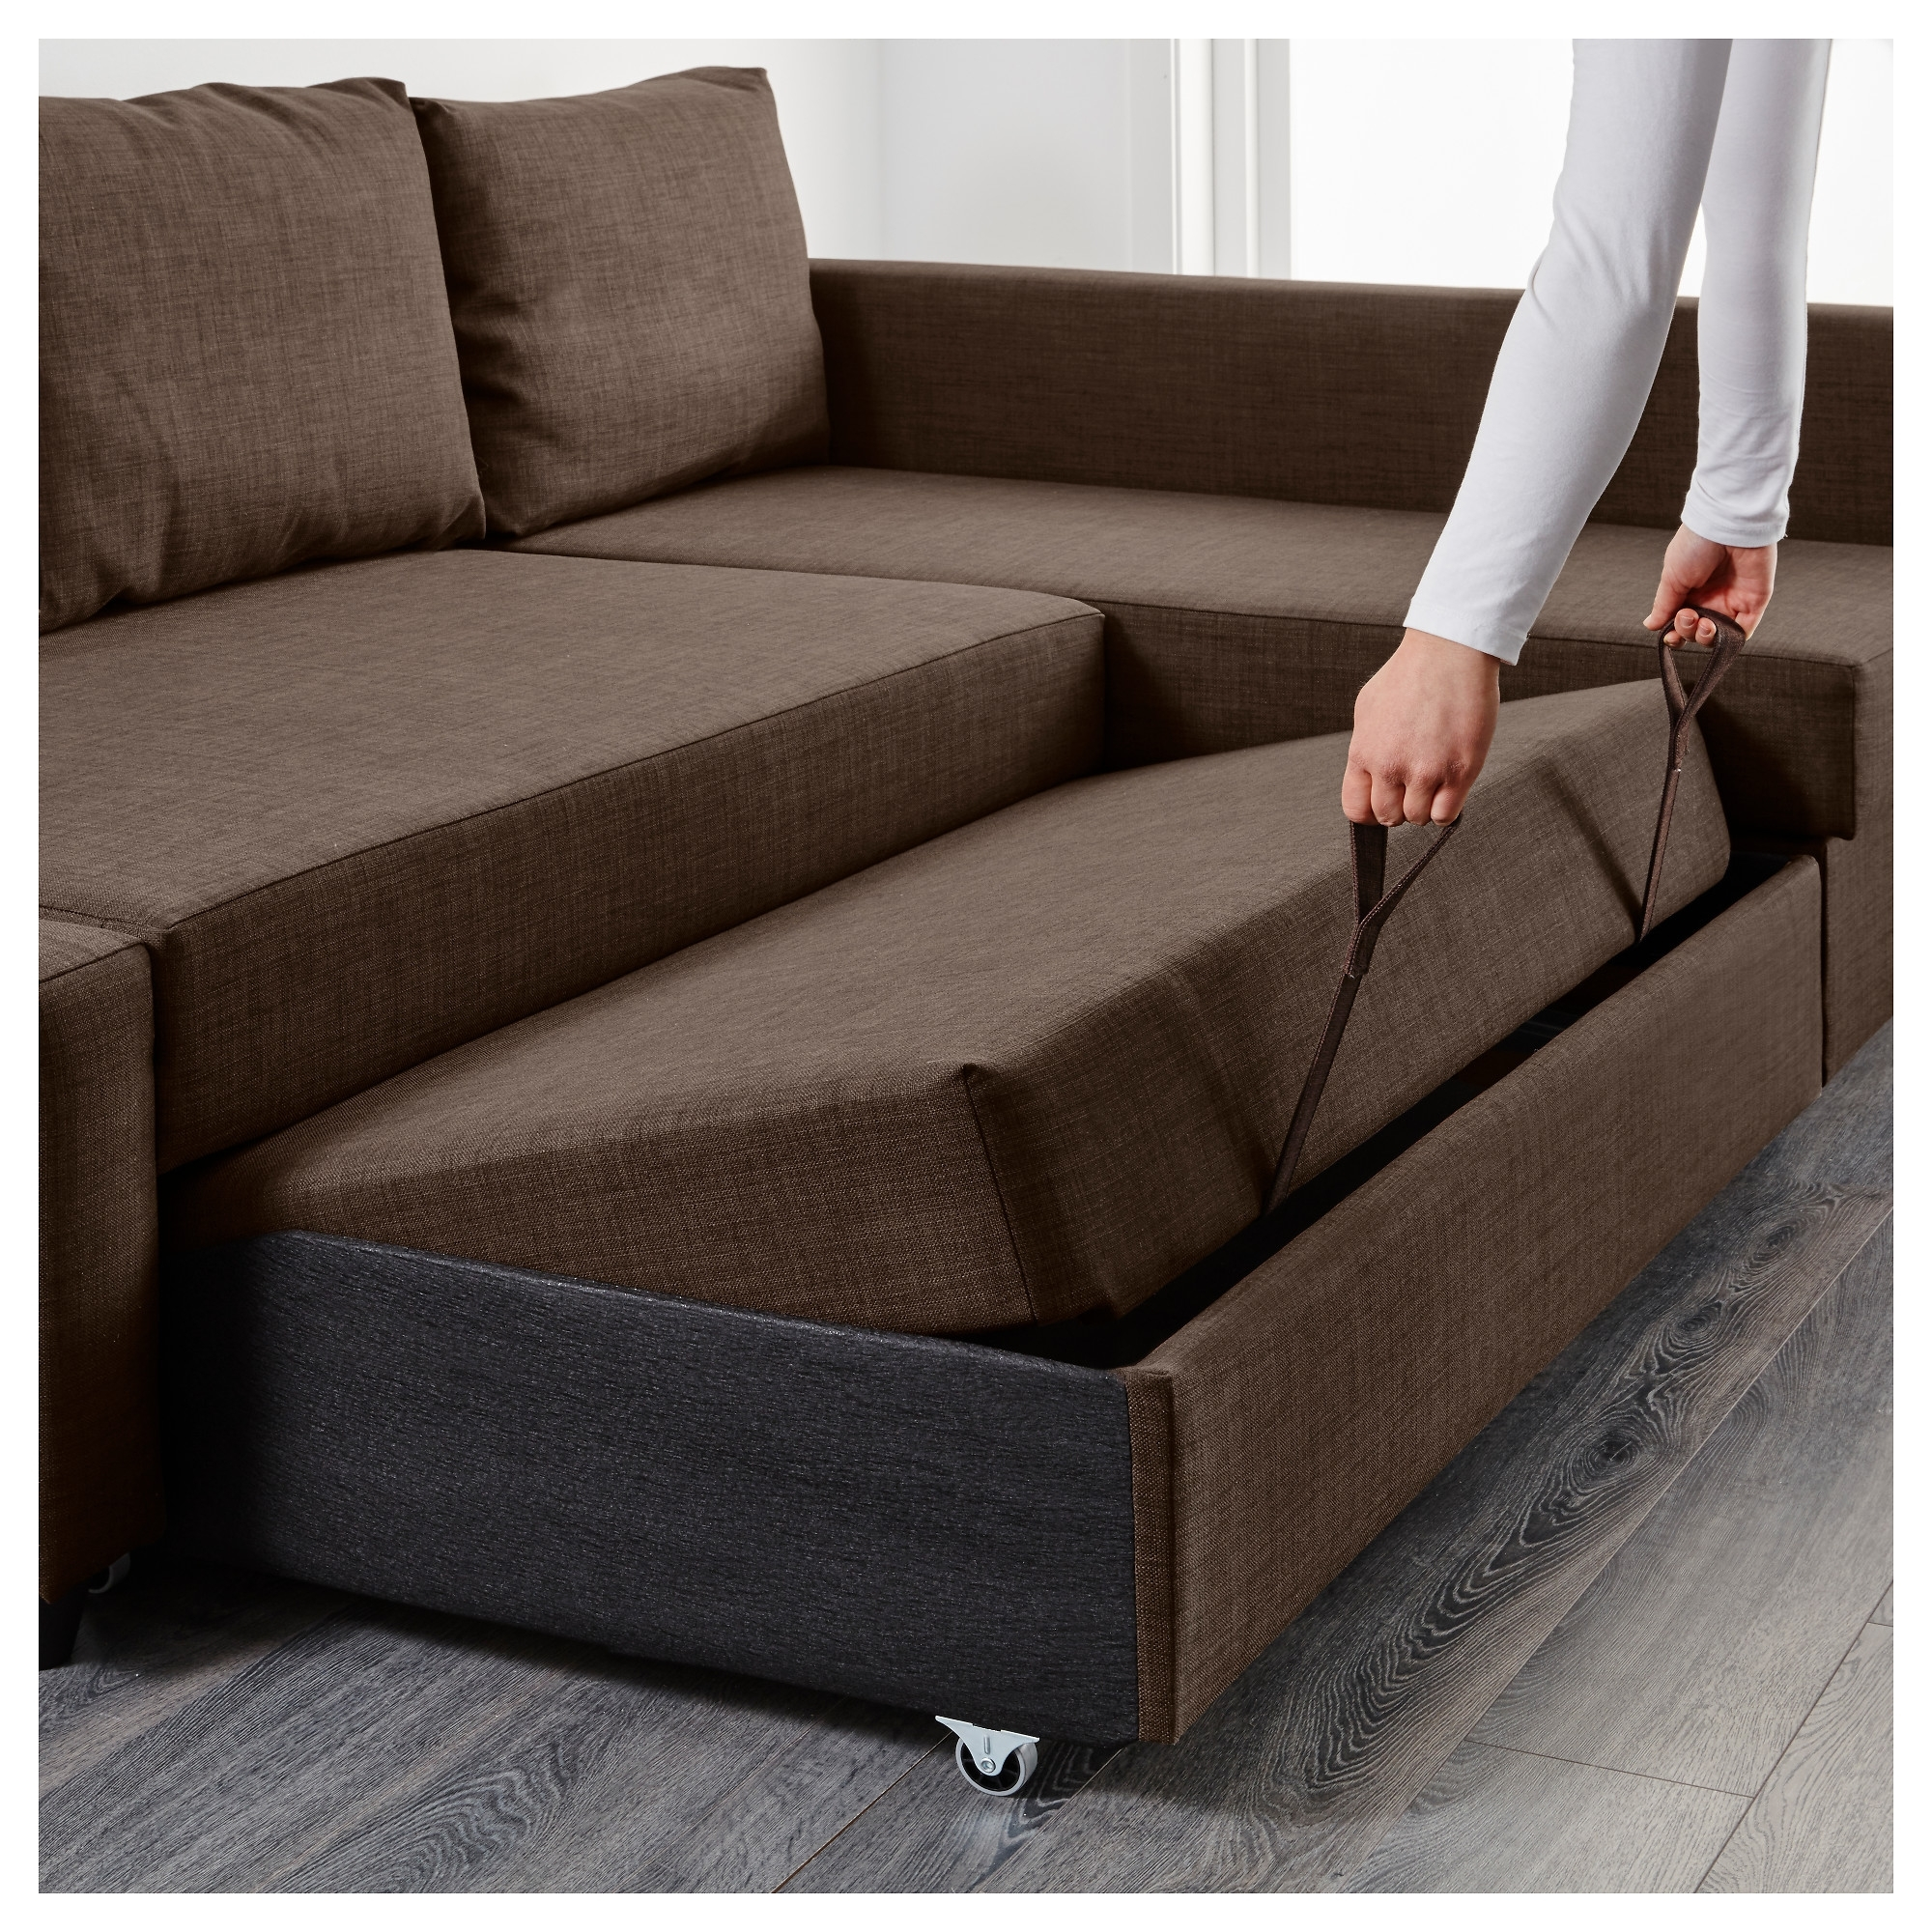 Friheten Sleeper Sectional,3 Seat W/storage – Skiftebo Dark Gray Within Famous Removable Covers Sectional Sofas (View 9 of 15)